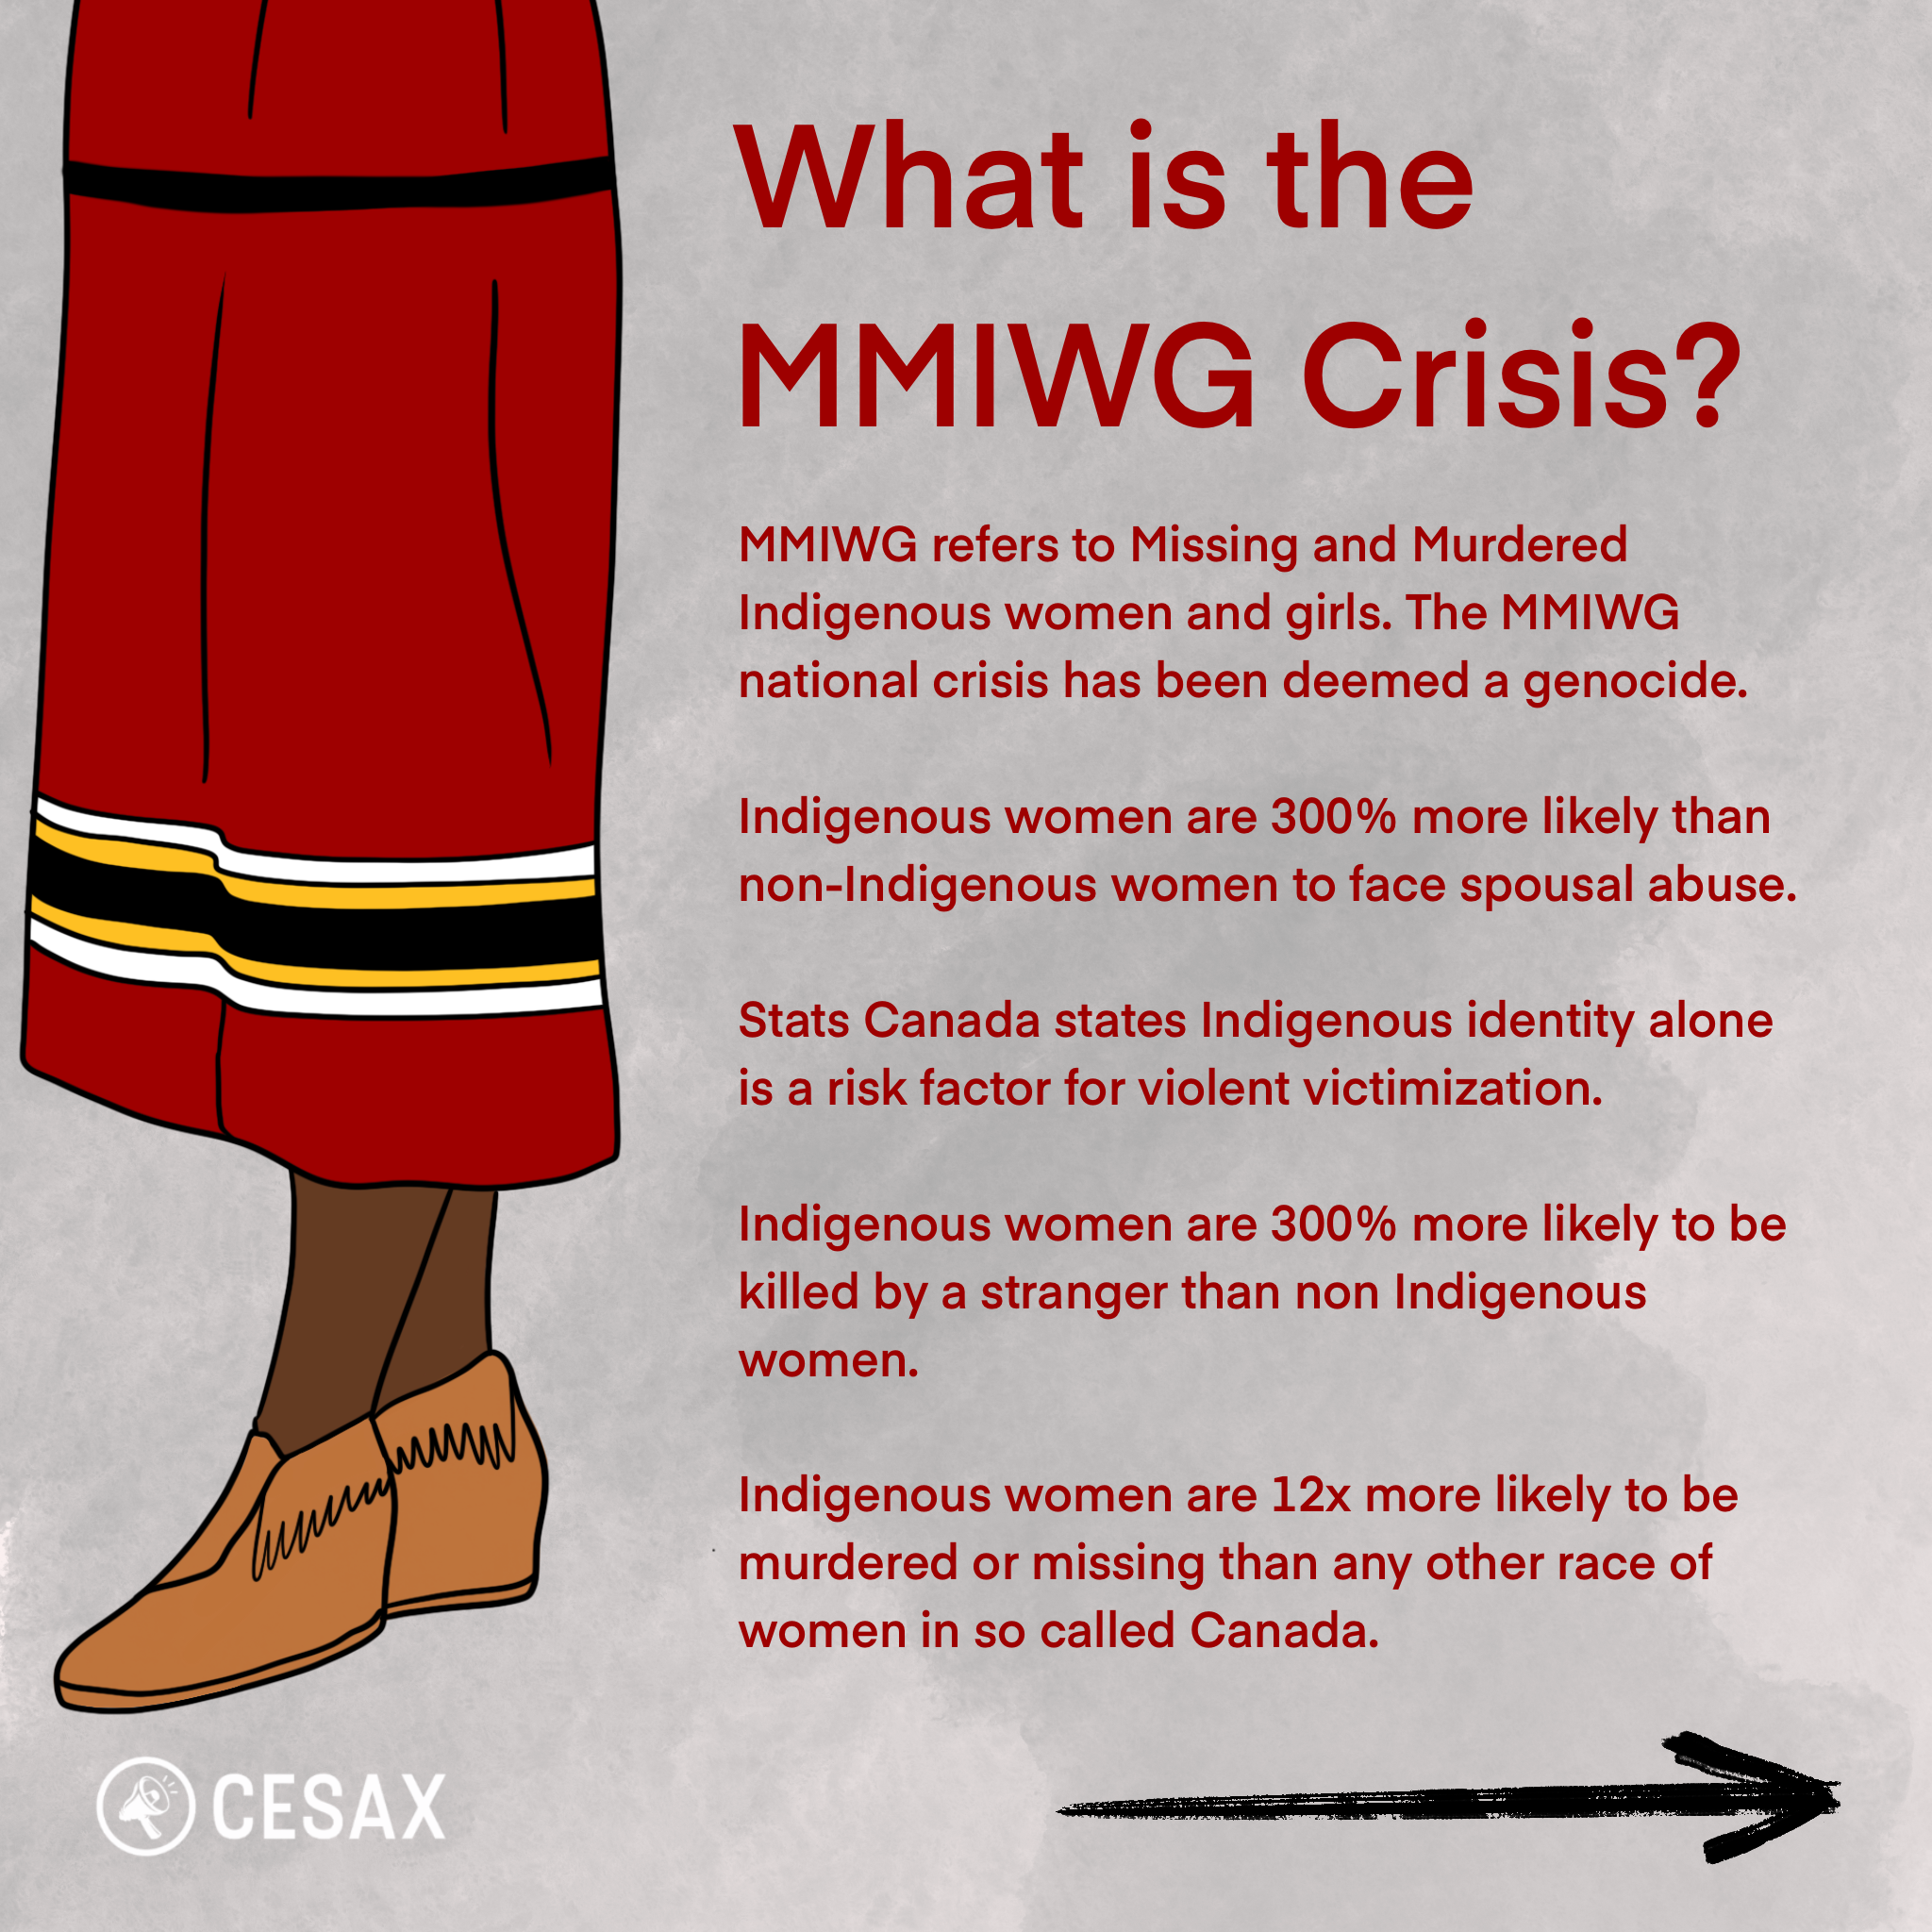 What is the MMIWG Crisis?